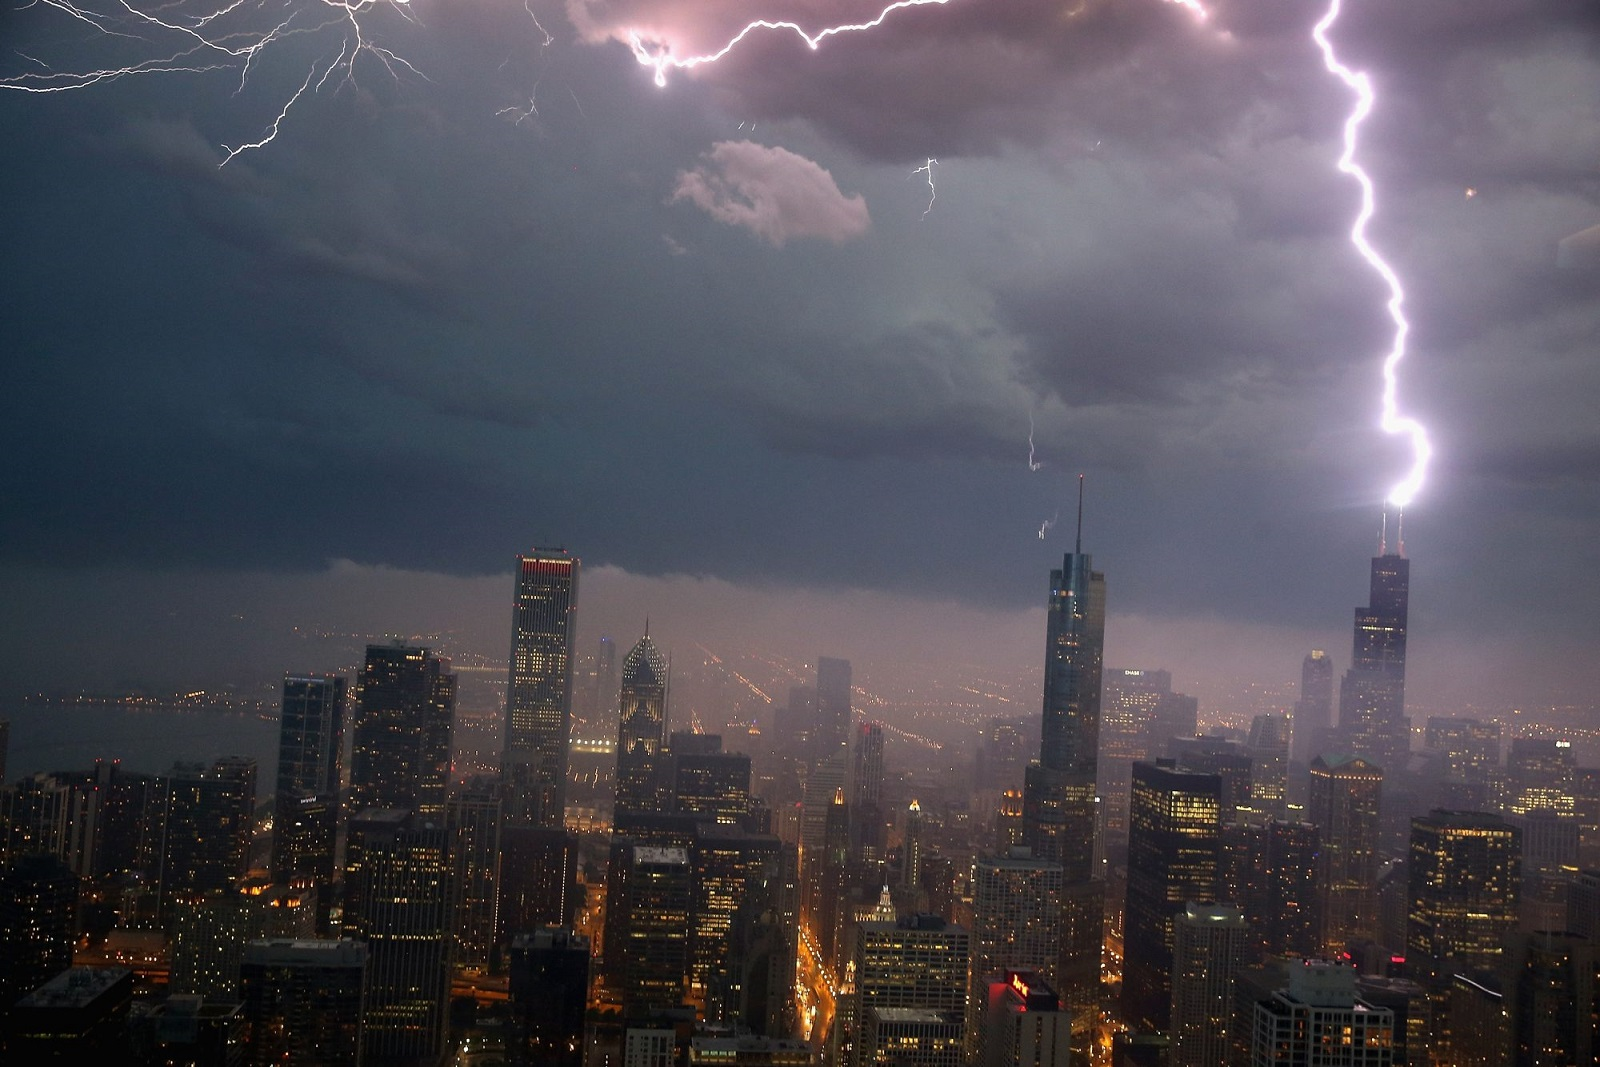 Lightning strikes the Willis Tower (formerly Sears Tower) in 2013 in Chicago. (Scott Olson/Getty Images)